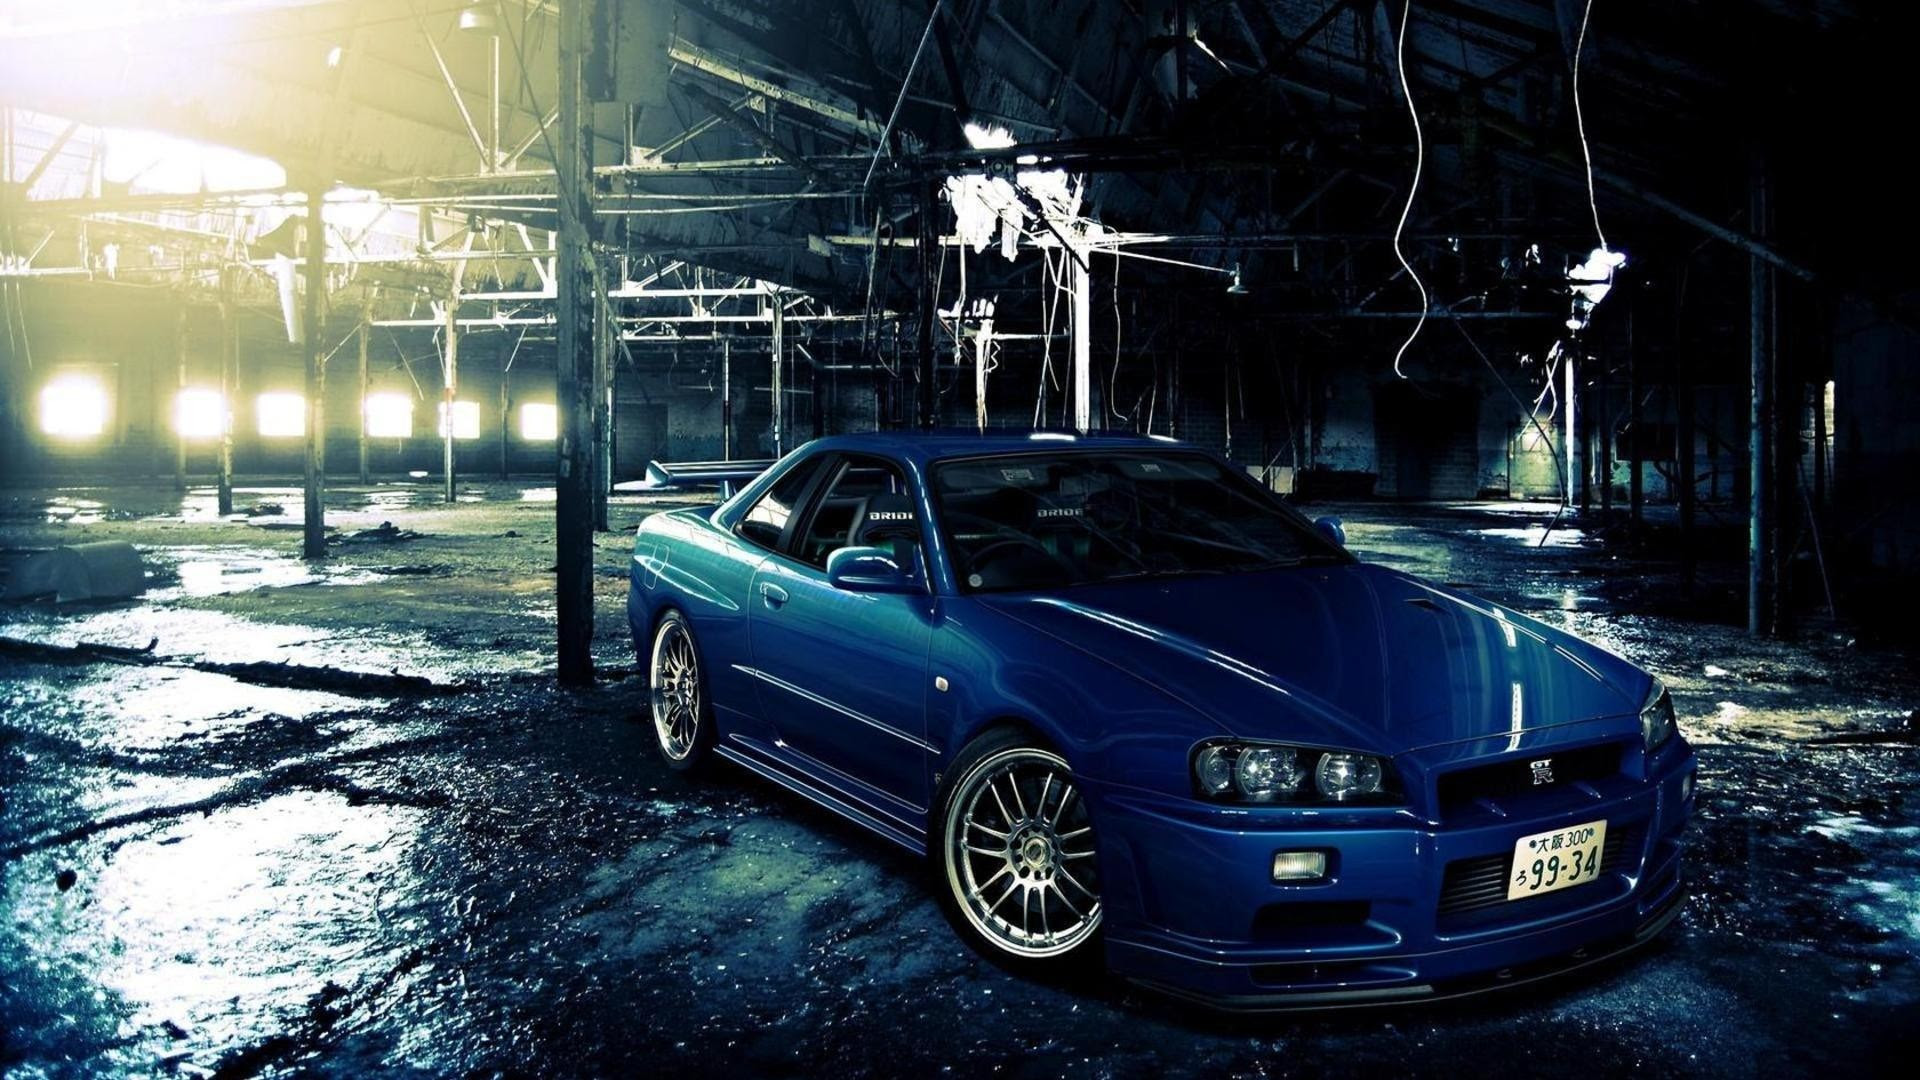 Nissan Skyline Gtr R34 Wallpaper Hd Engine Information